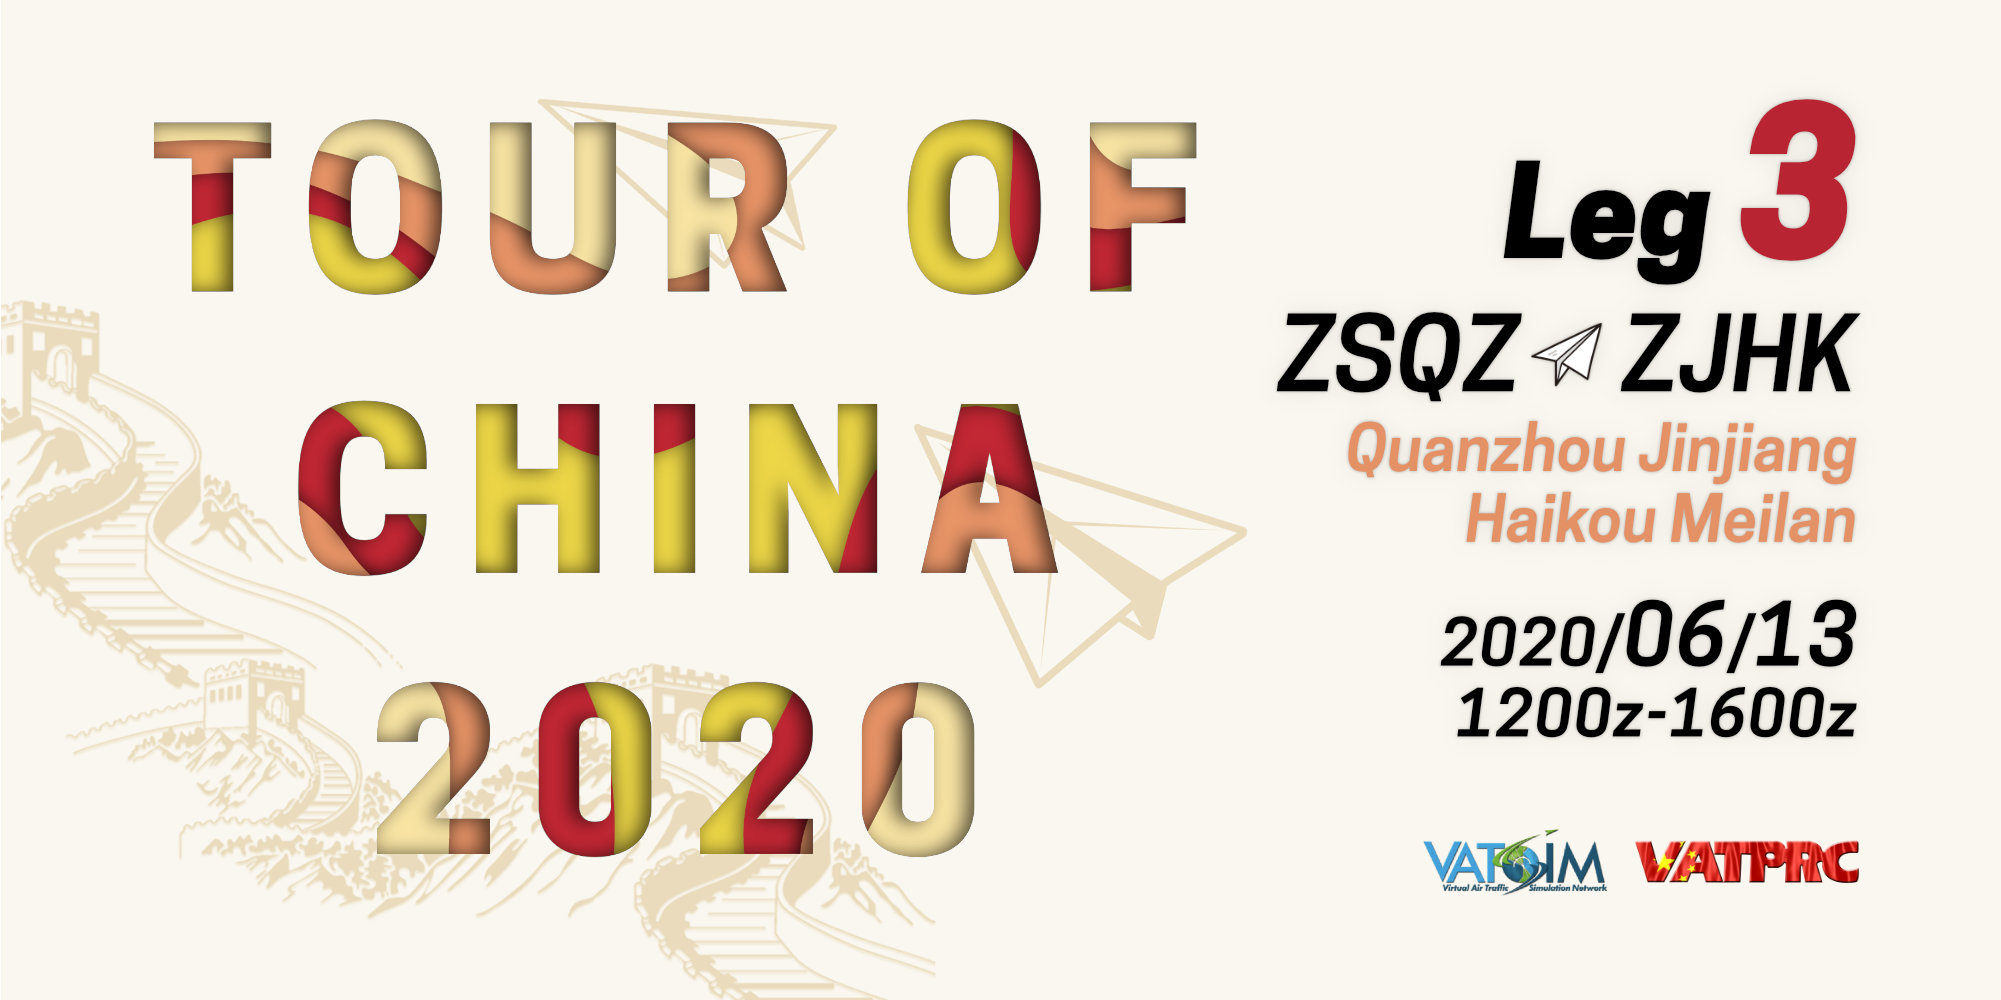 [2020-06-13] Tour Of China 2020 Leg 3 | Quanzhou – Haikou